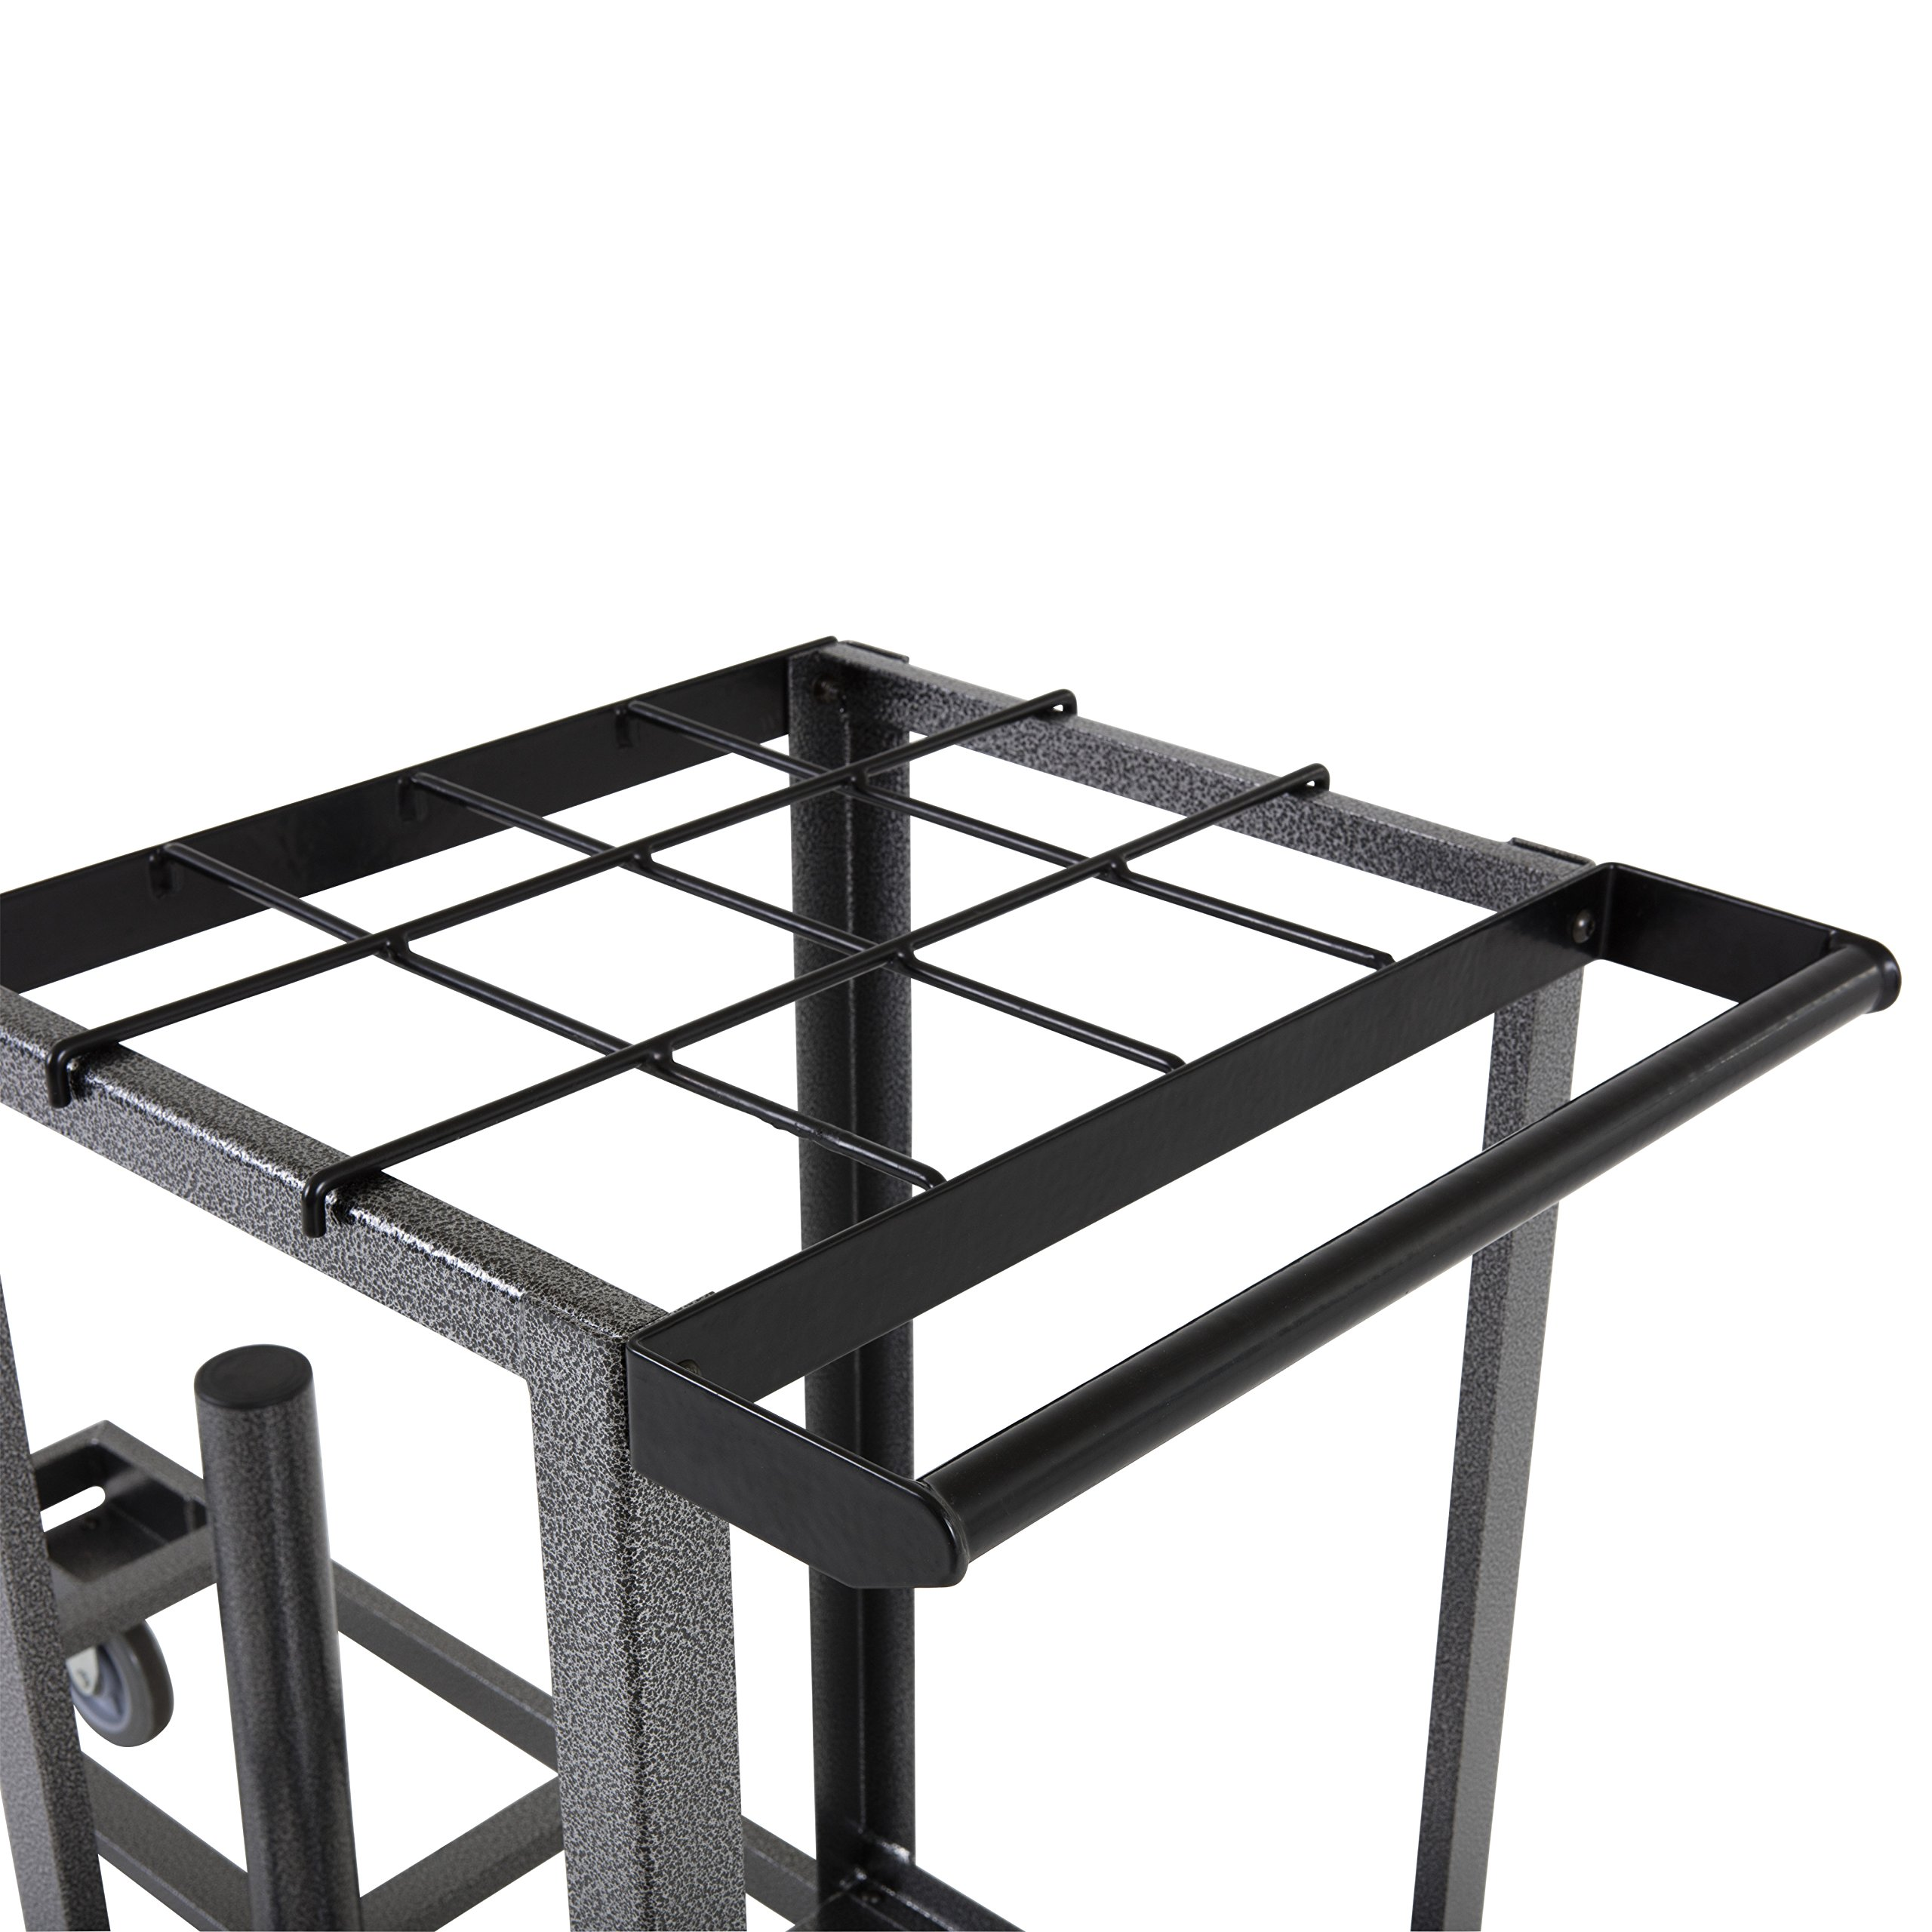 US Weight Statesman Stanchion Cart Kit – 12 Premium Black Steel Stanchions with Cart by US Weight (Image #12)